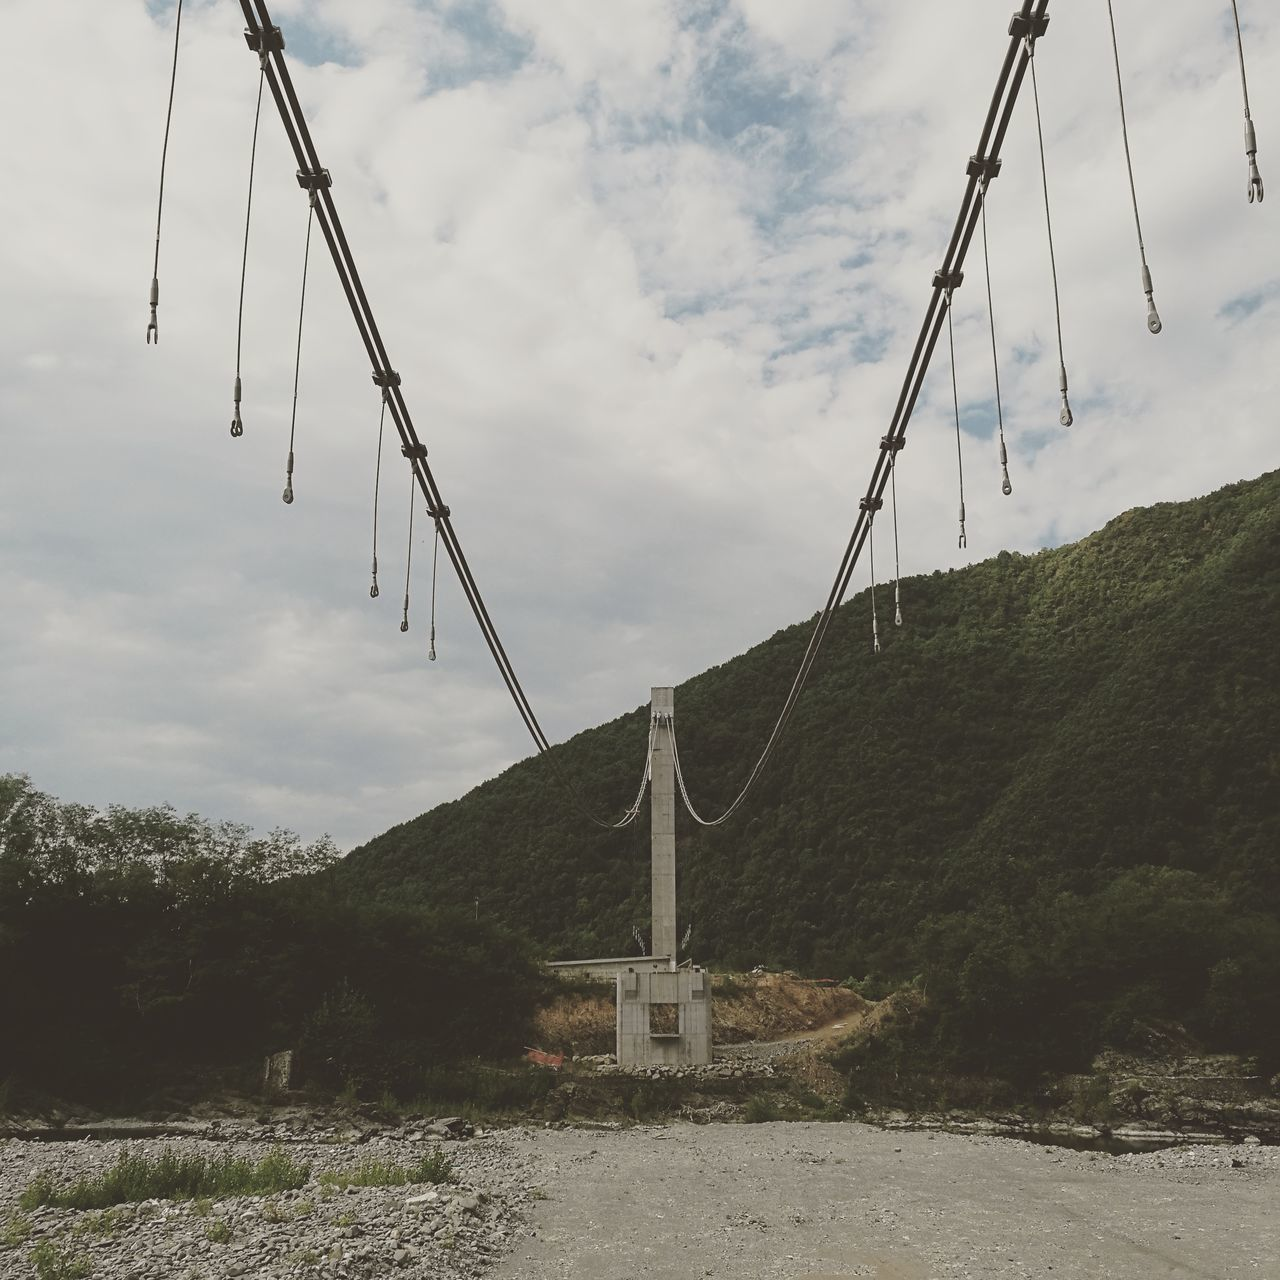 cloud - sky, sky, cable, connection, no people, nature, outdoors, day, tranquil scene, scenics, tranquility, mountain, overhead cable car, low angle view, landscape, beauty in nature, tree, ski lift